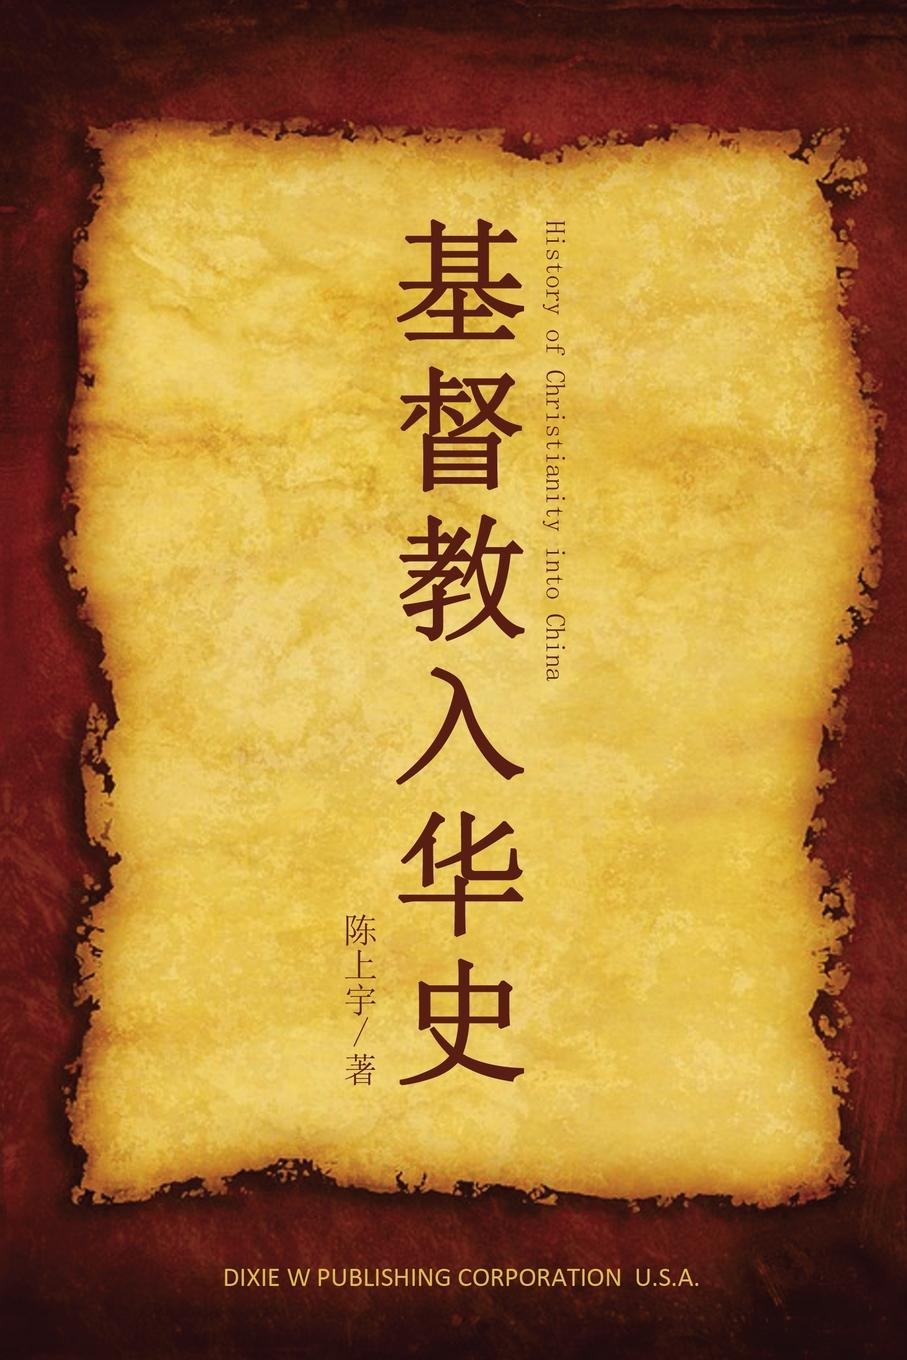 Shangyu Chen, China Soul for Christ Foundation History of Christianity into China 我能管好我自己 让我更阳光的100个独立成长故事